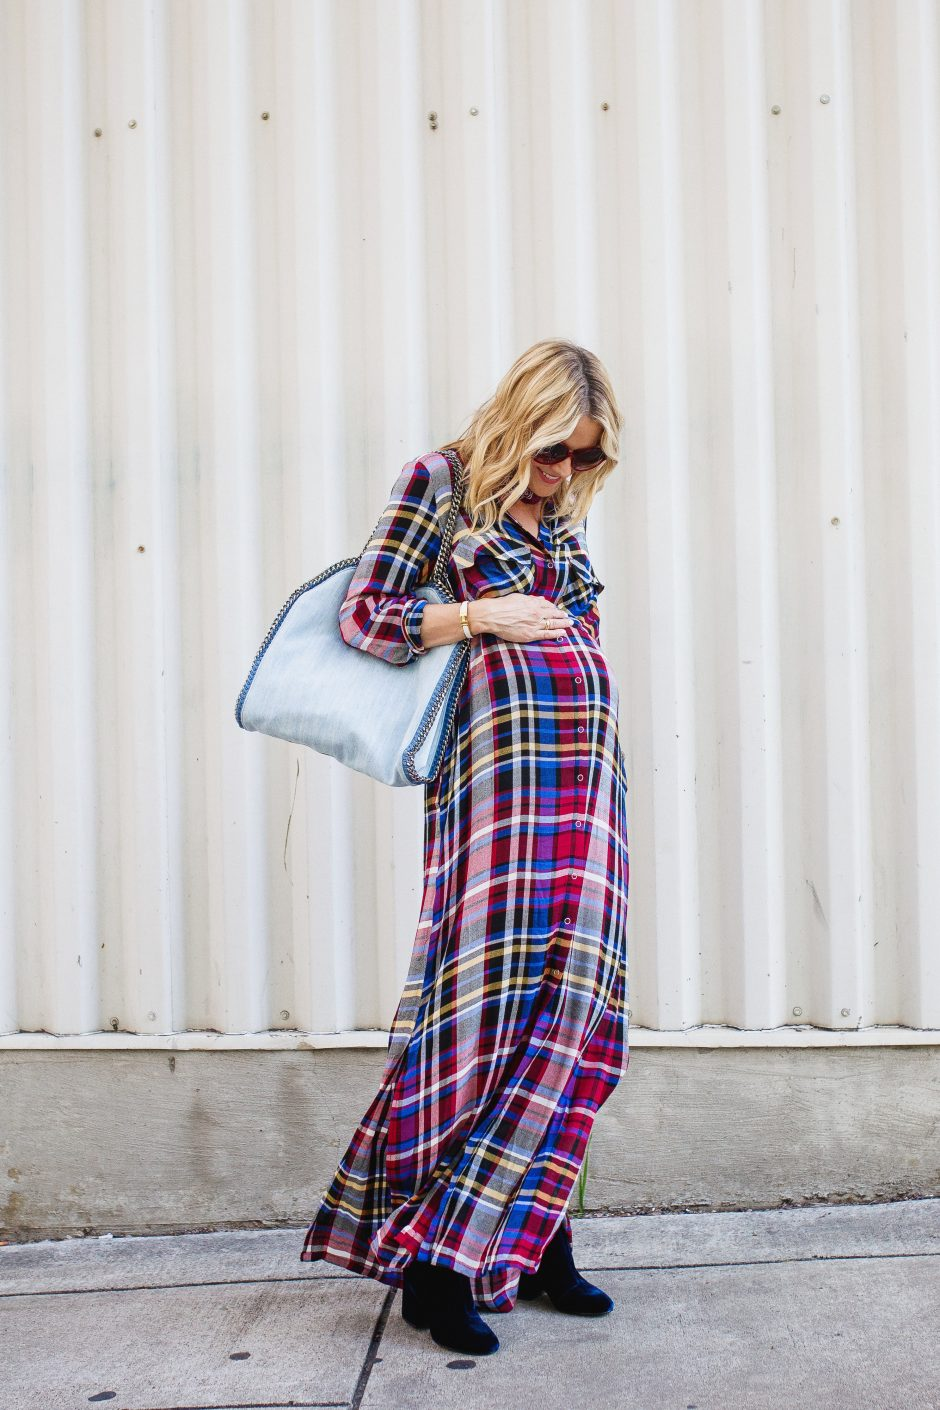 View More plaid dress: http://traciling.pass.us/lyndseyblog2